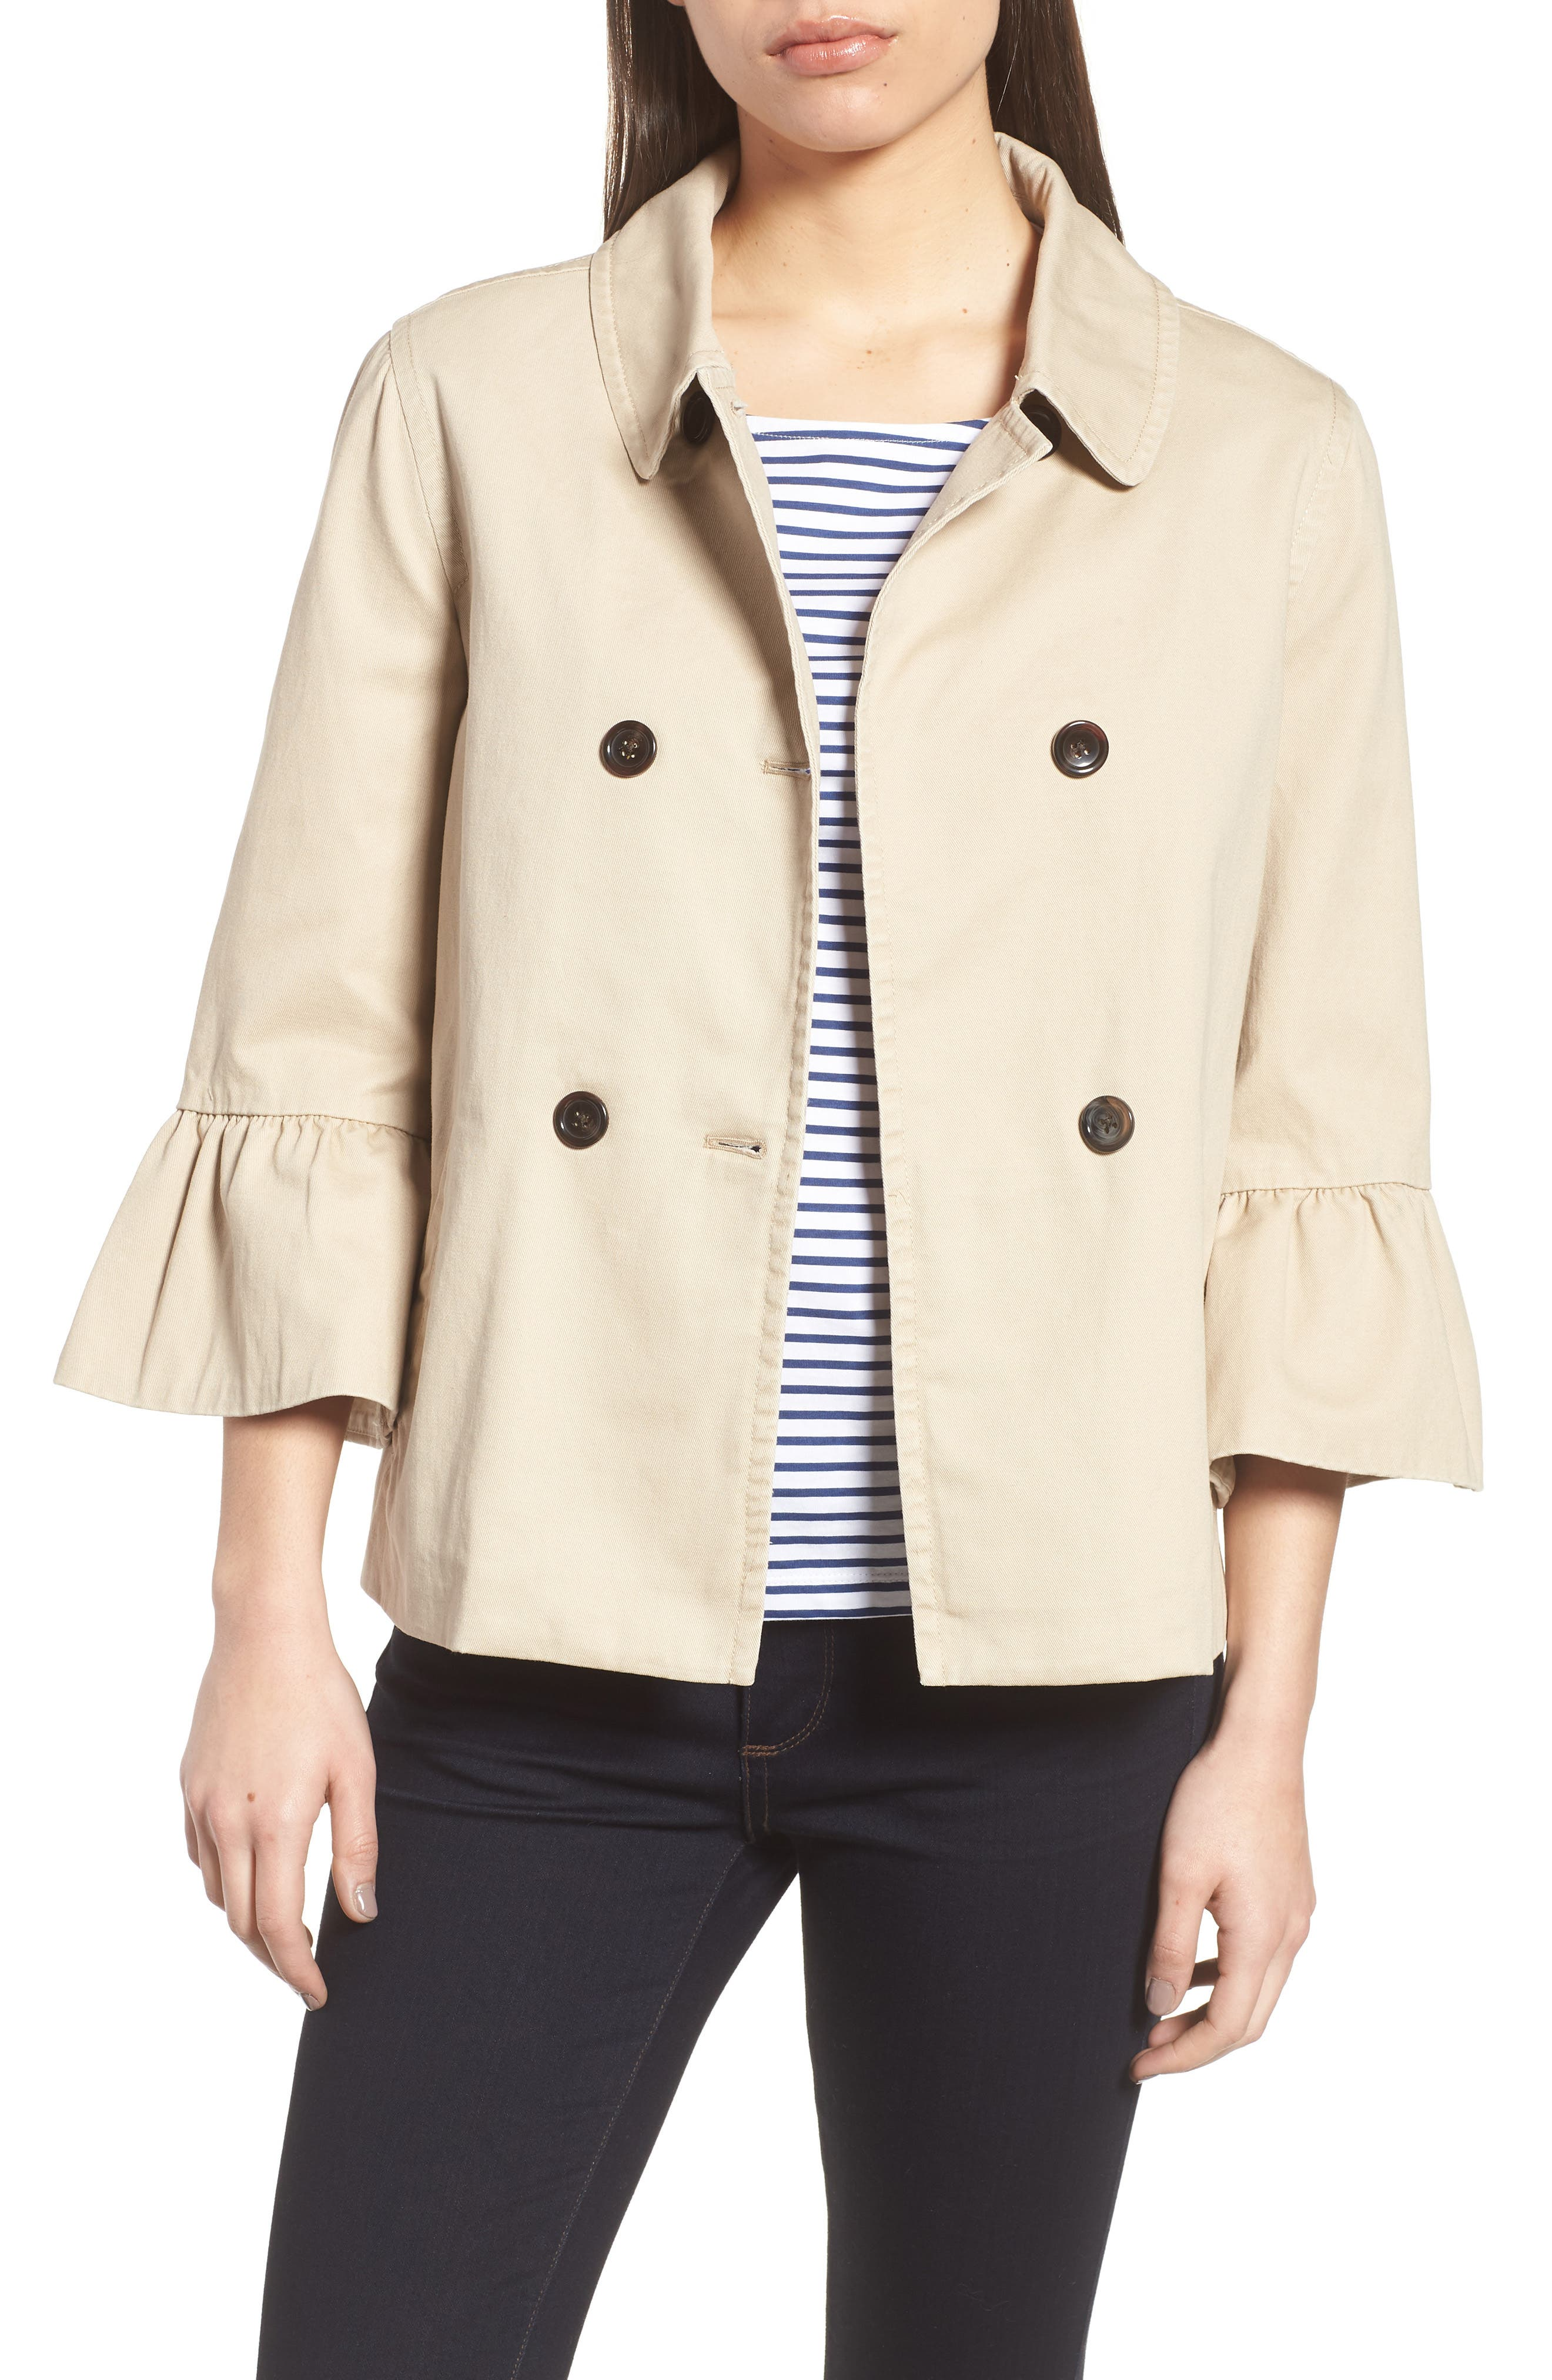 Draper James Casual Peplum Sleeve Utility Jacket